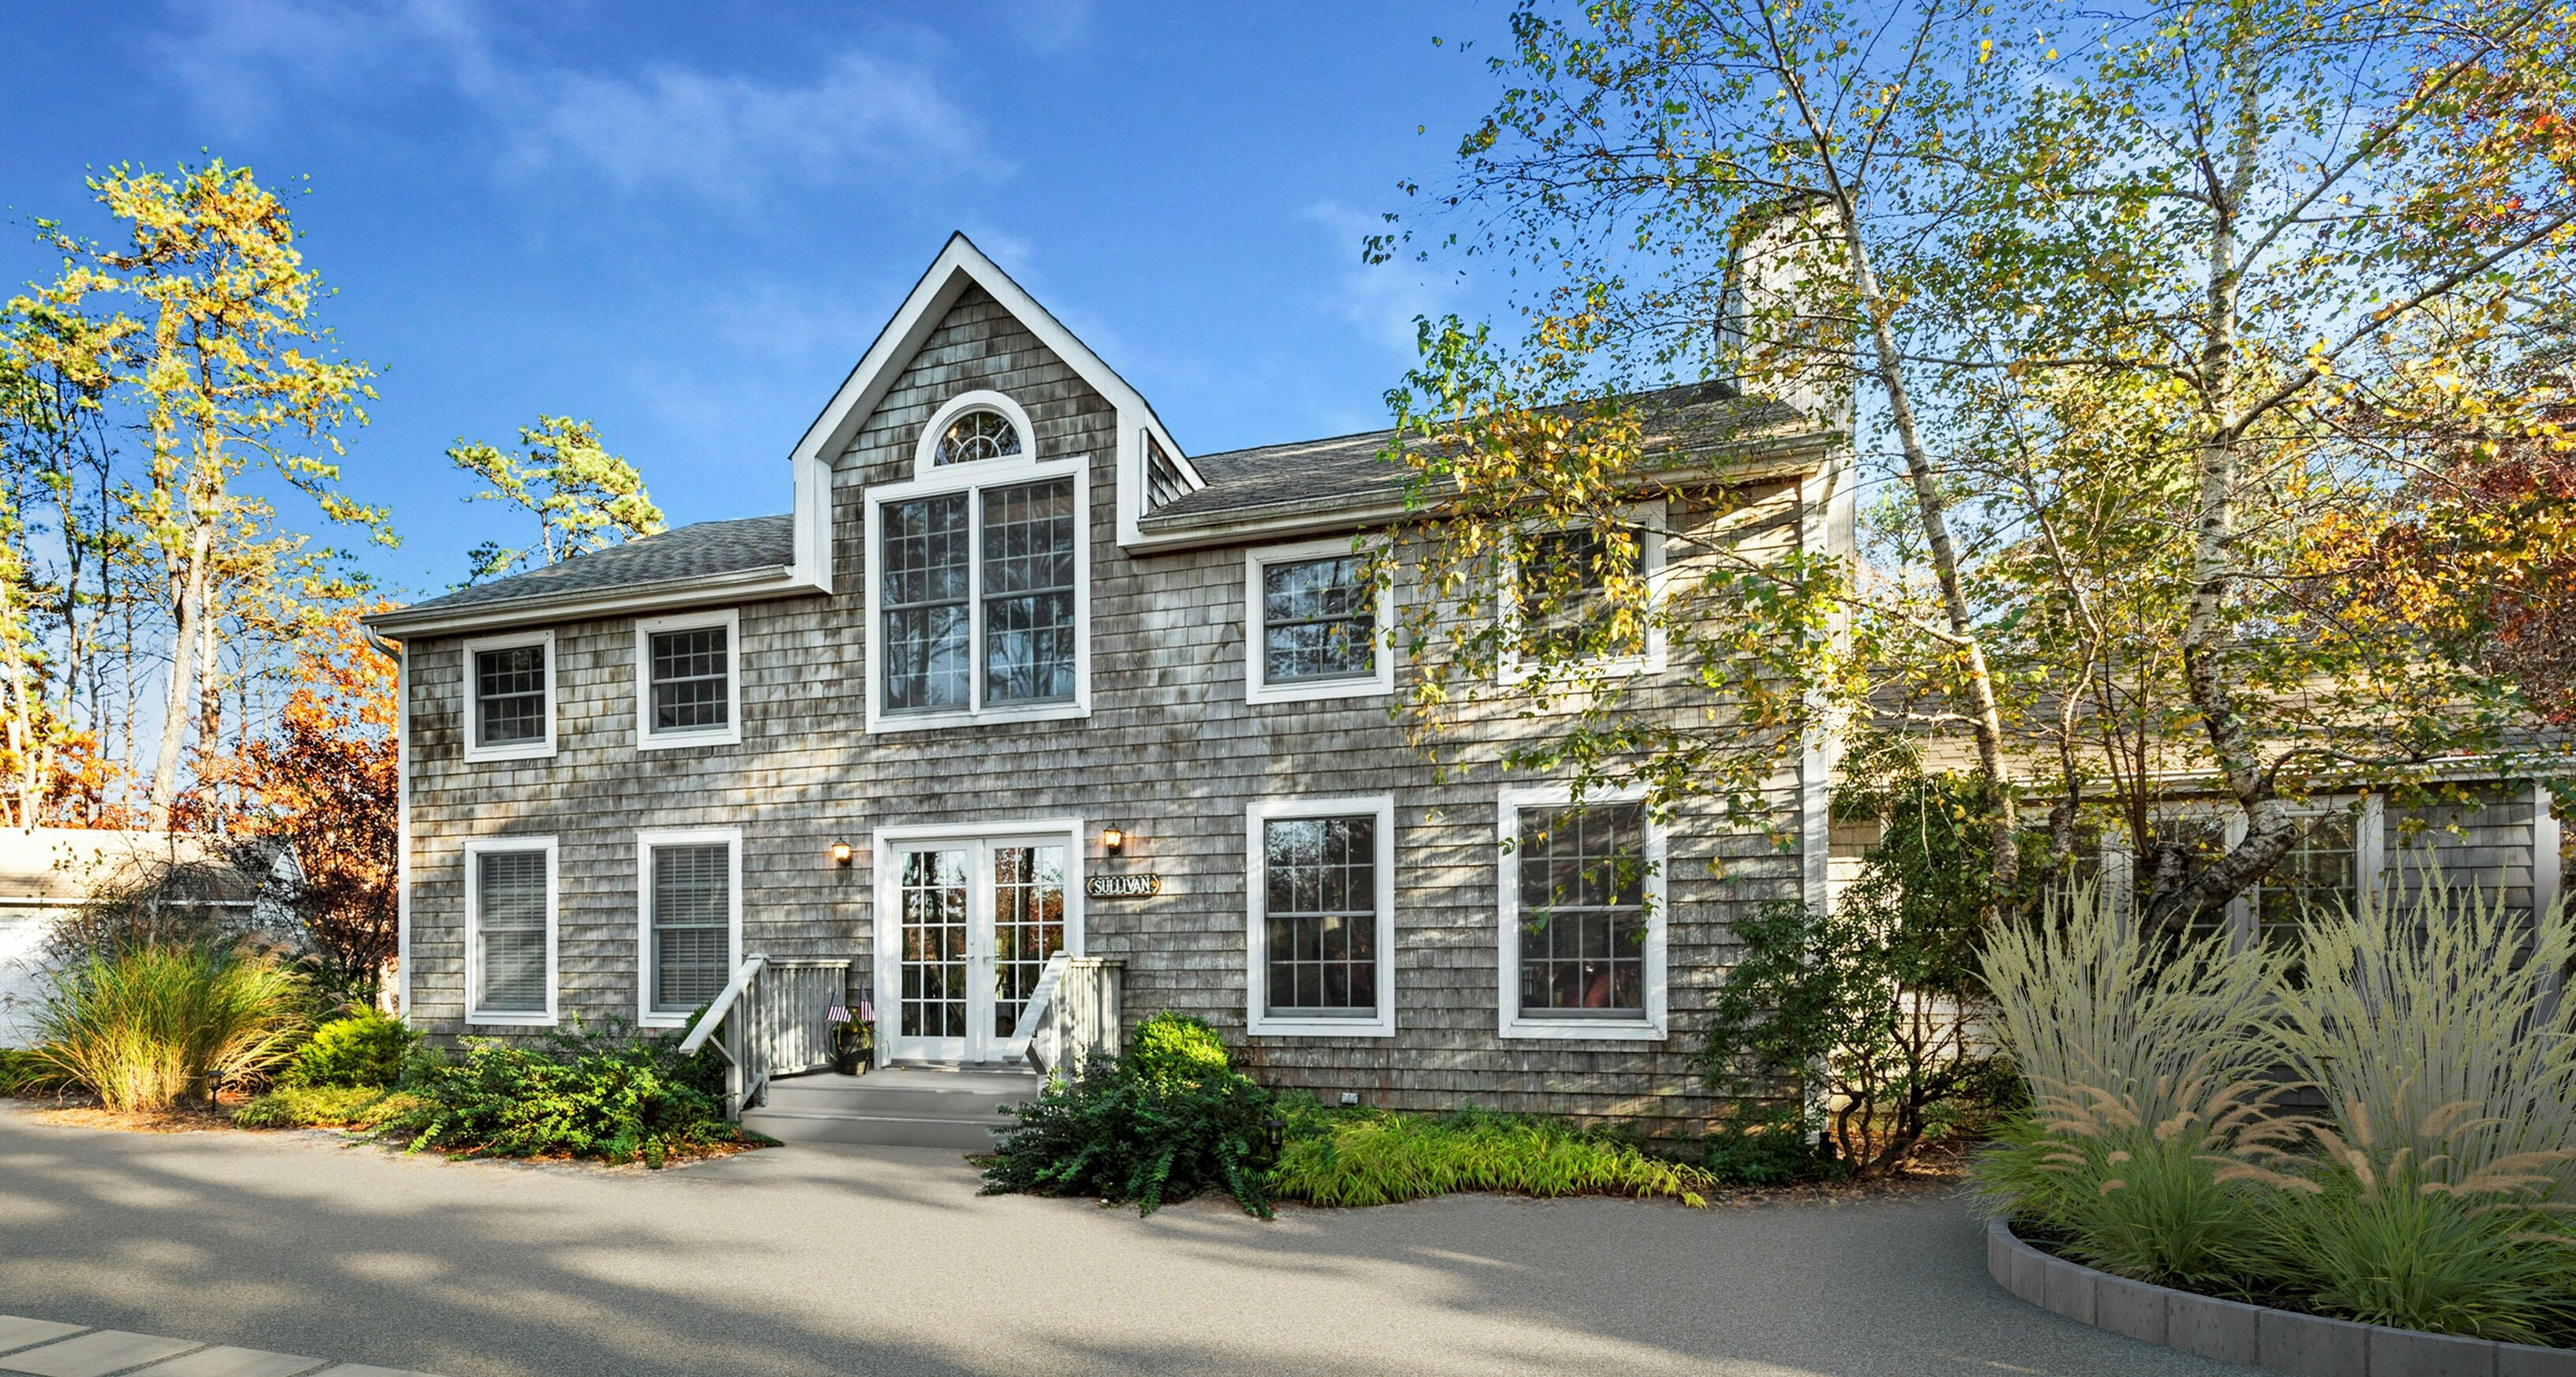 629 Sag Harbor Tpke - East Hampton NW, New York